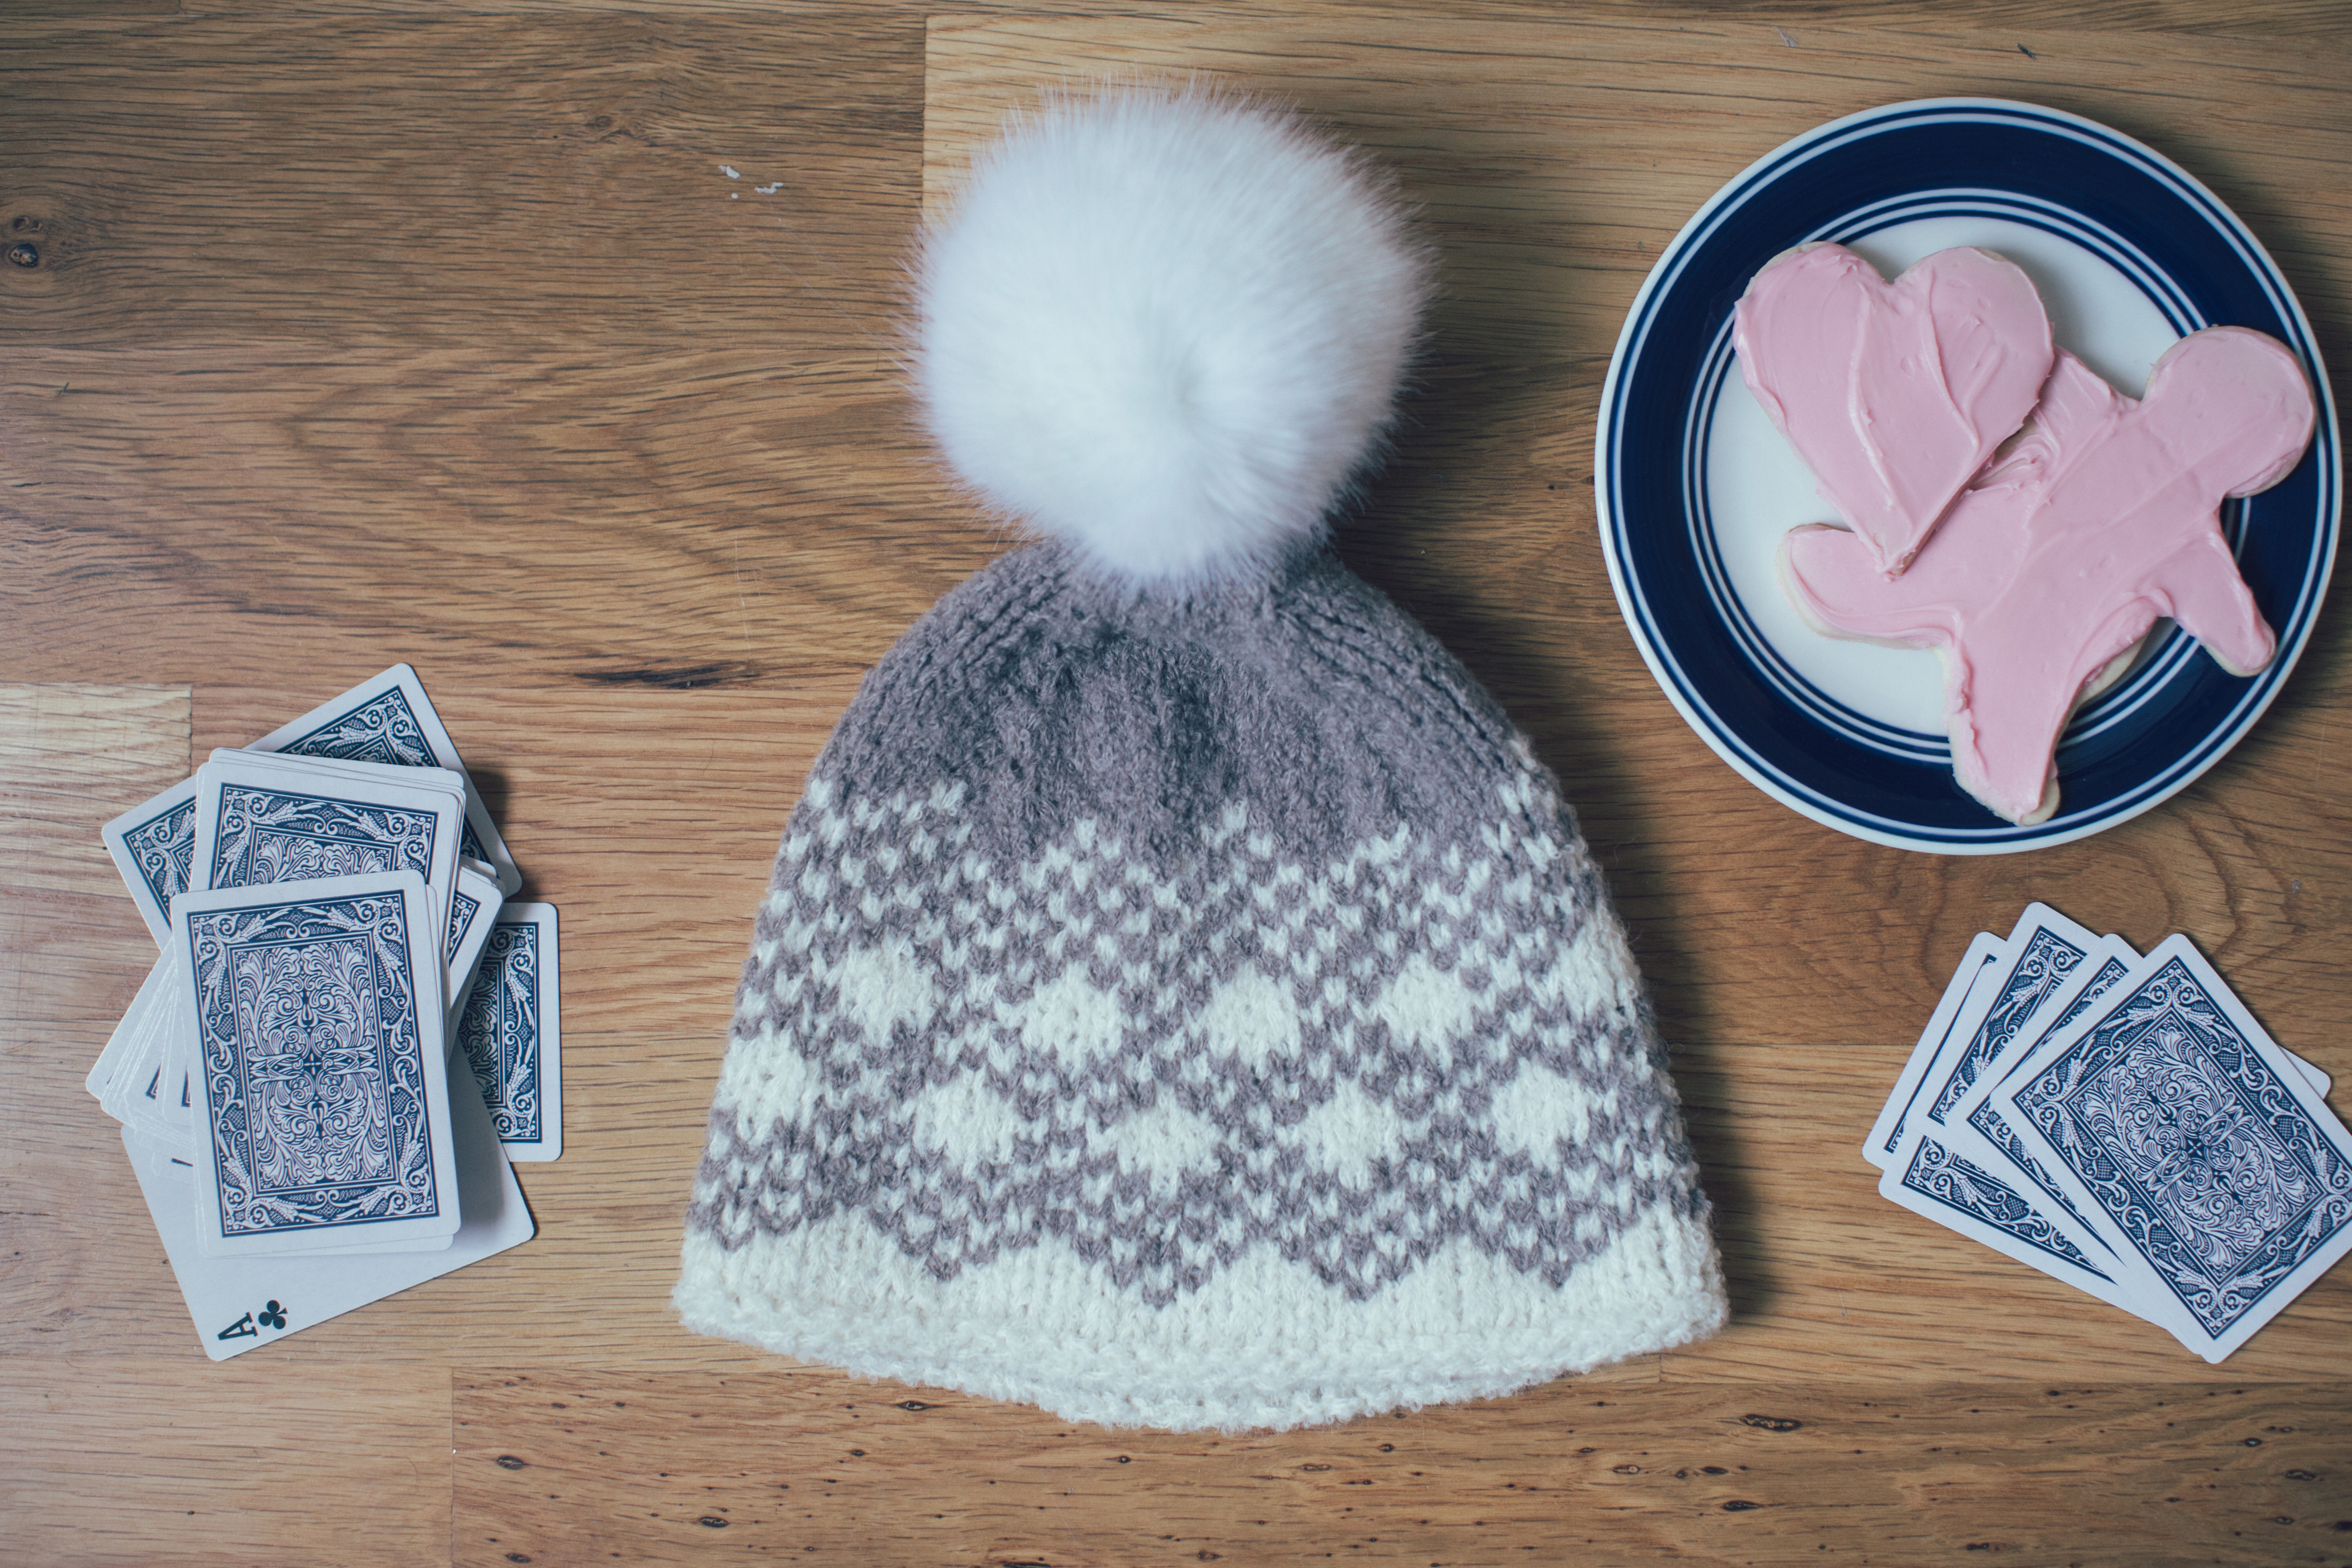 macaroon hat knitting pattern by amy palmer from knitscene winter 2016